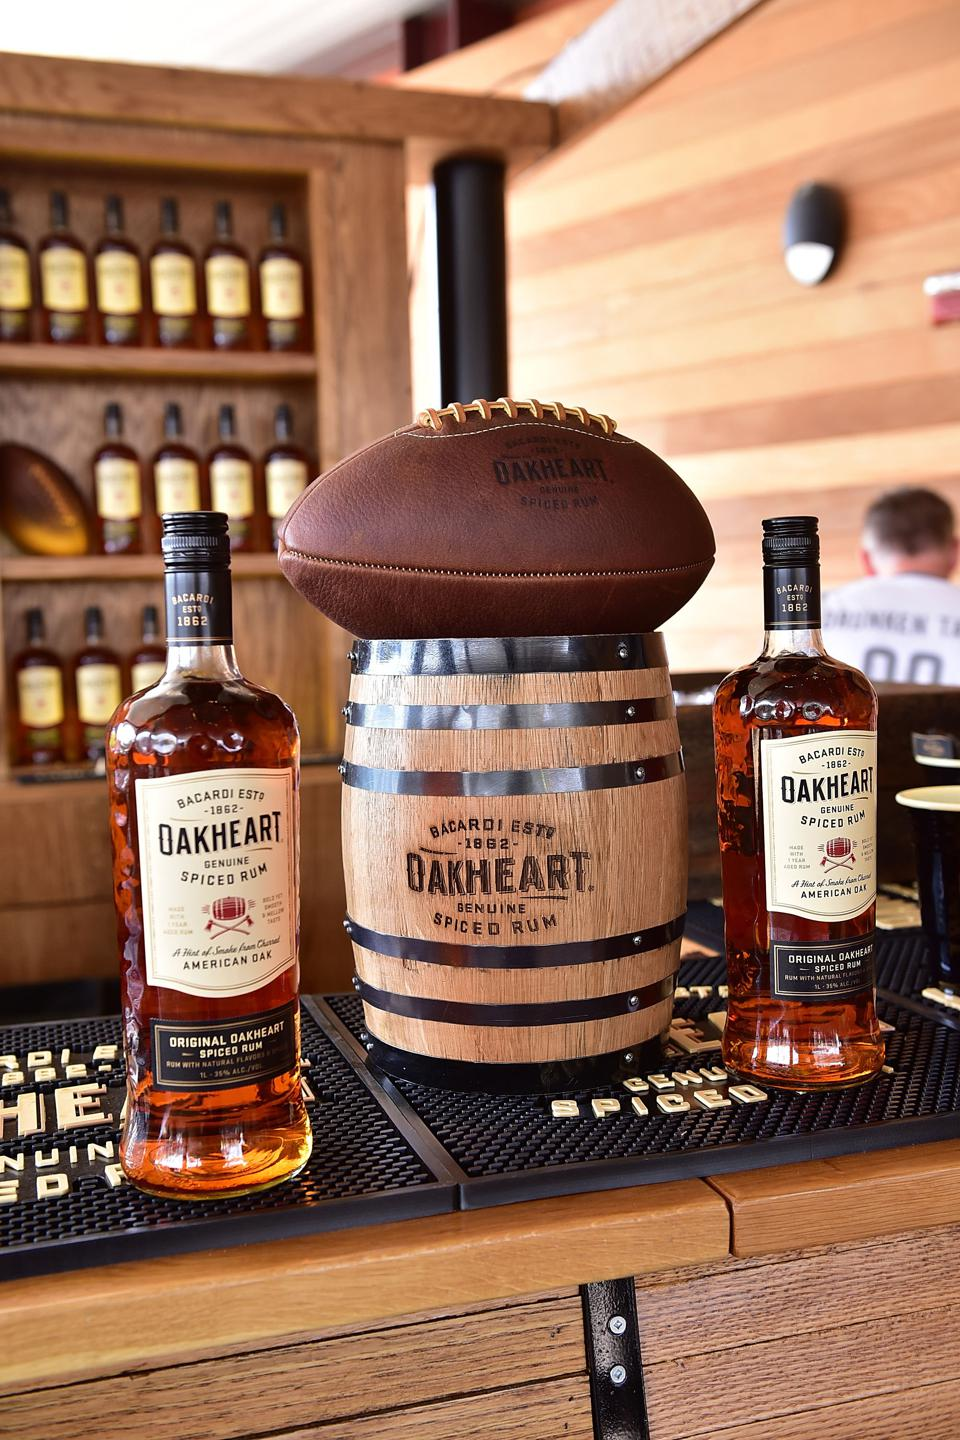 OAKHEART Genuine Spiced Rum and Legendary Former American Football Running Back Brian Westbrook Take Over XFINITY Live! To Launch the ″Oakth″ Challenge